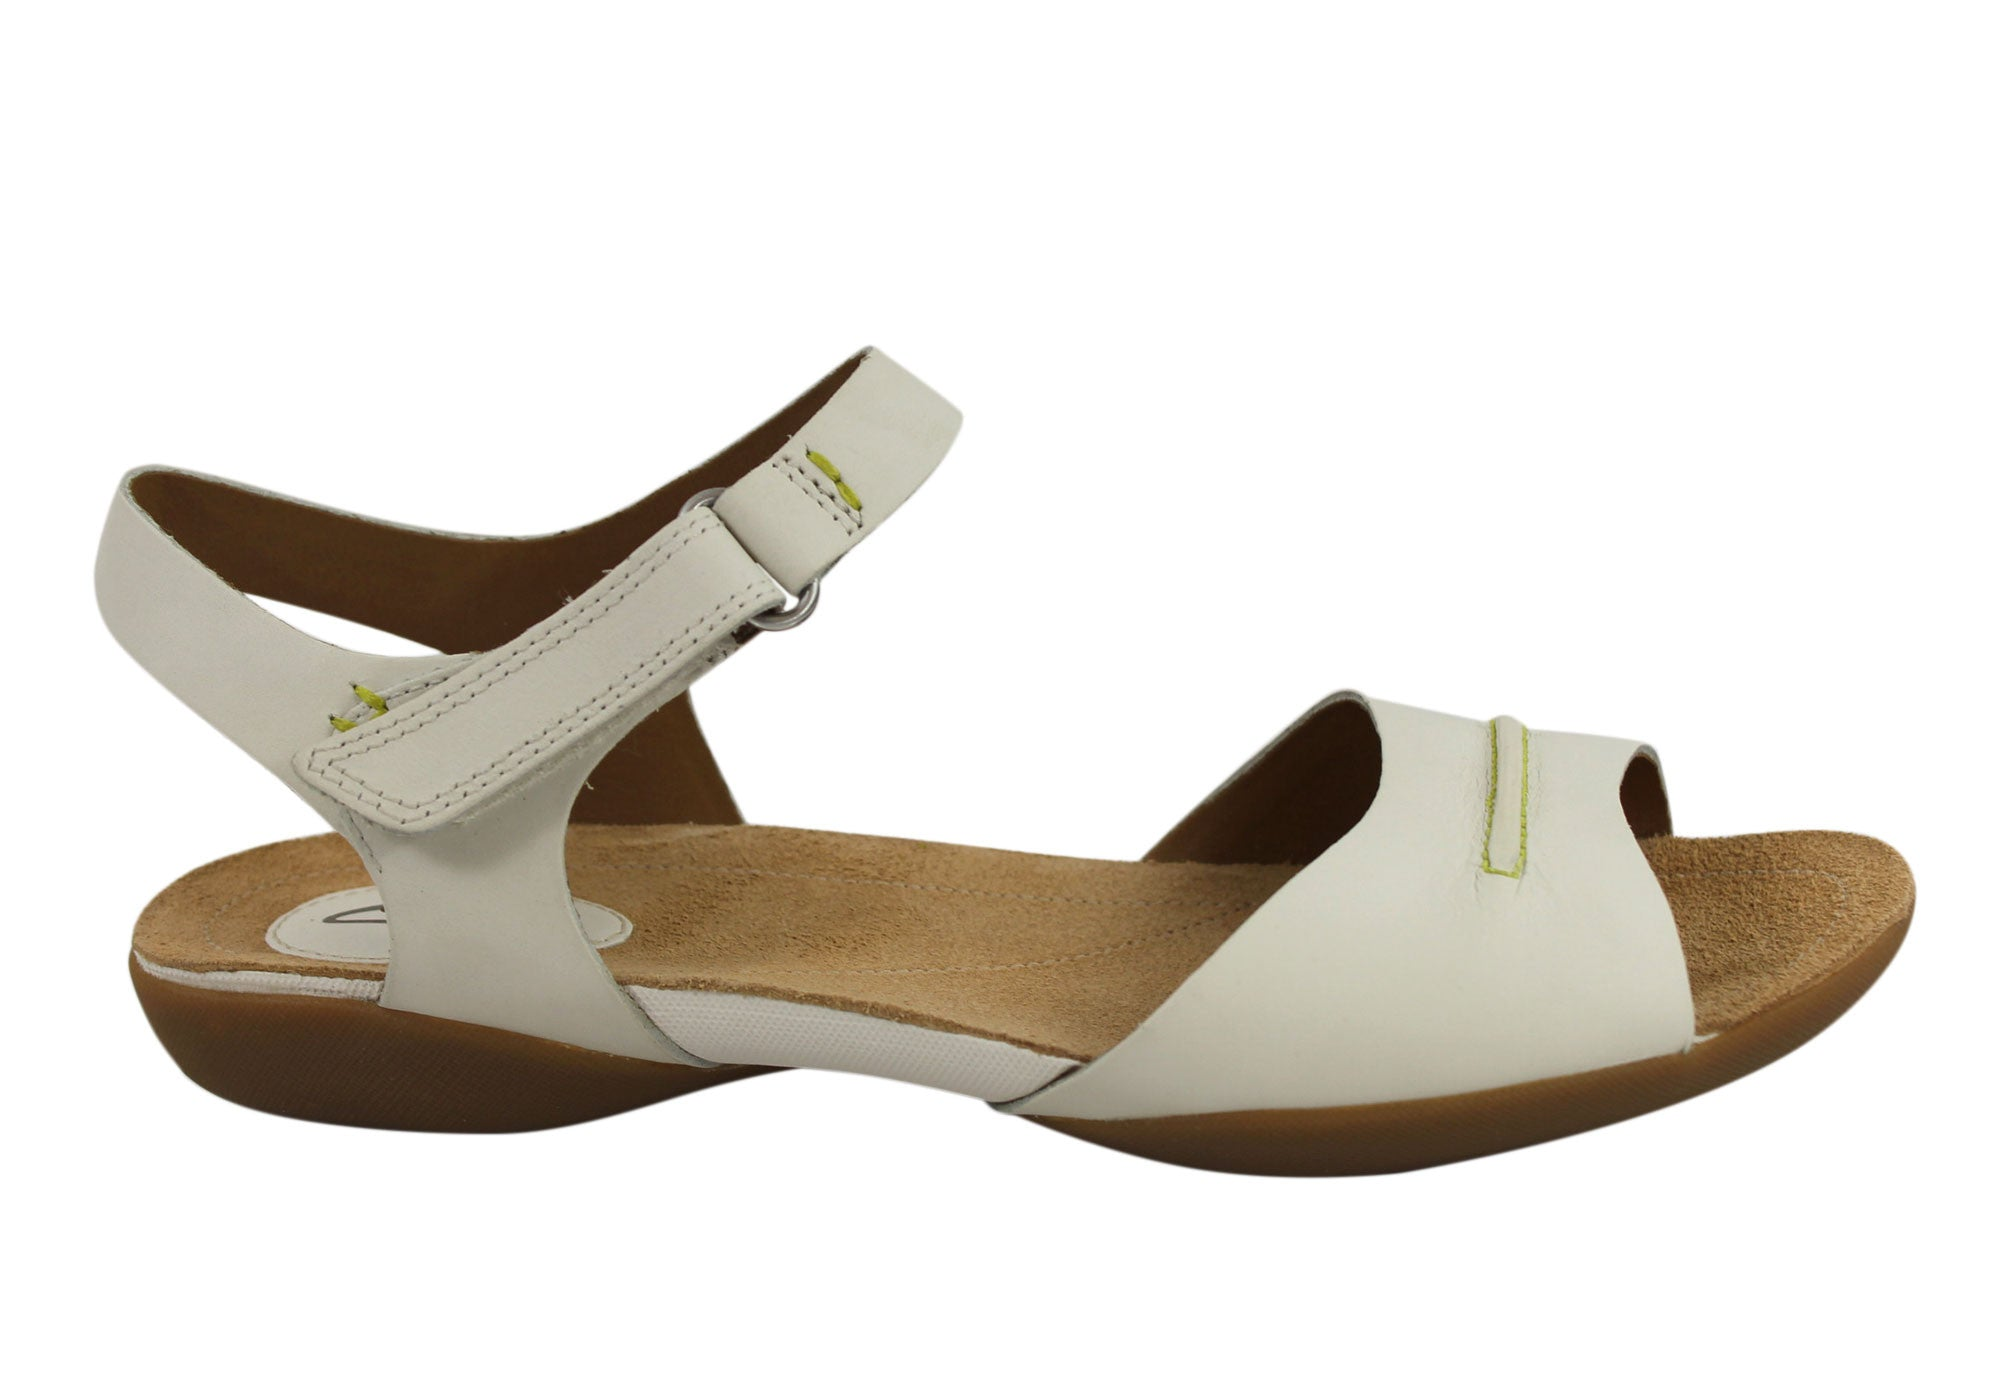 clarks shoes and sandals ladies